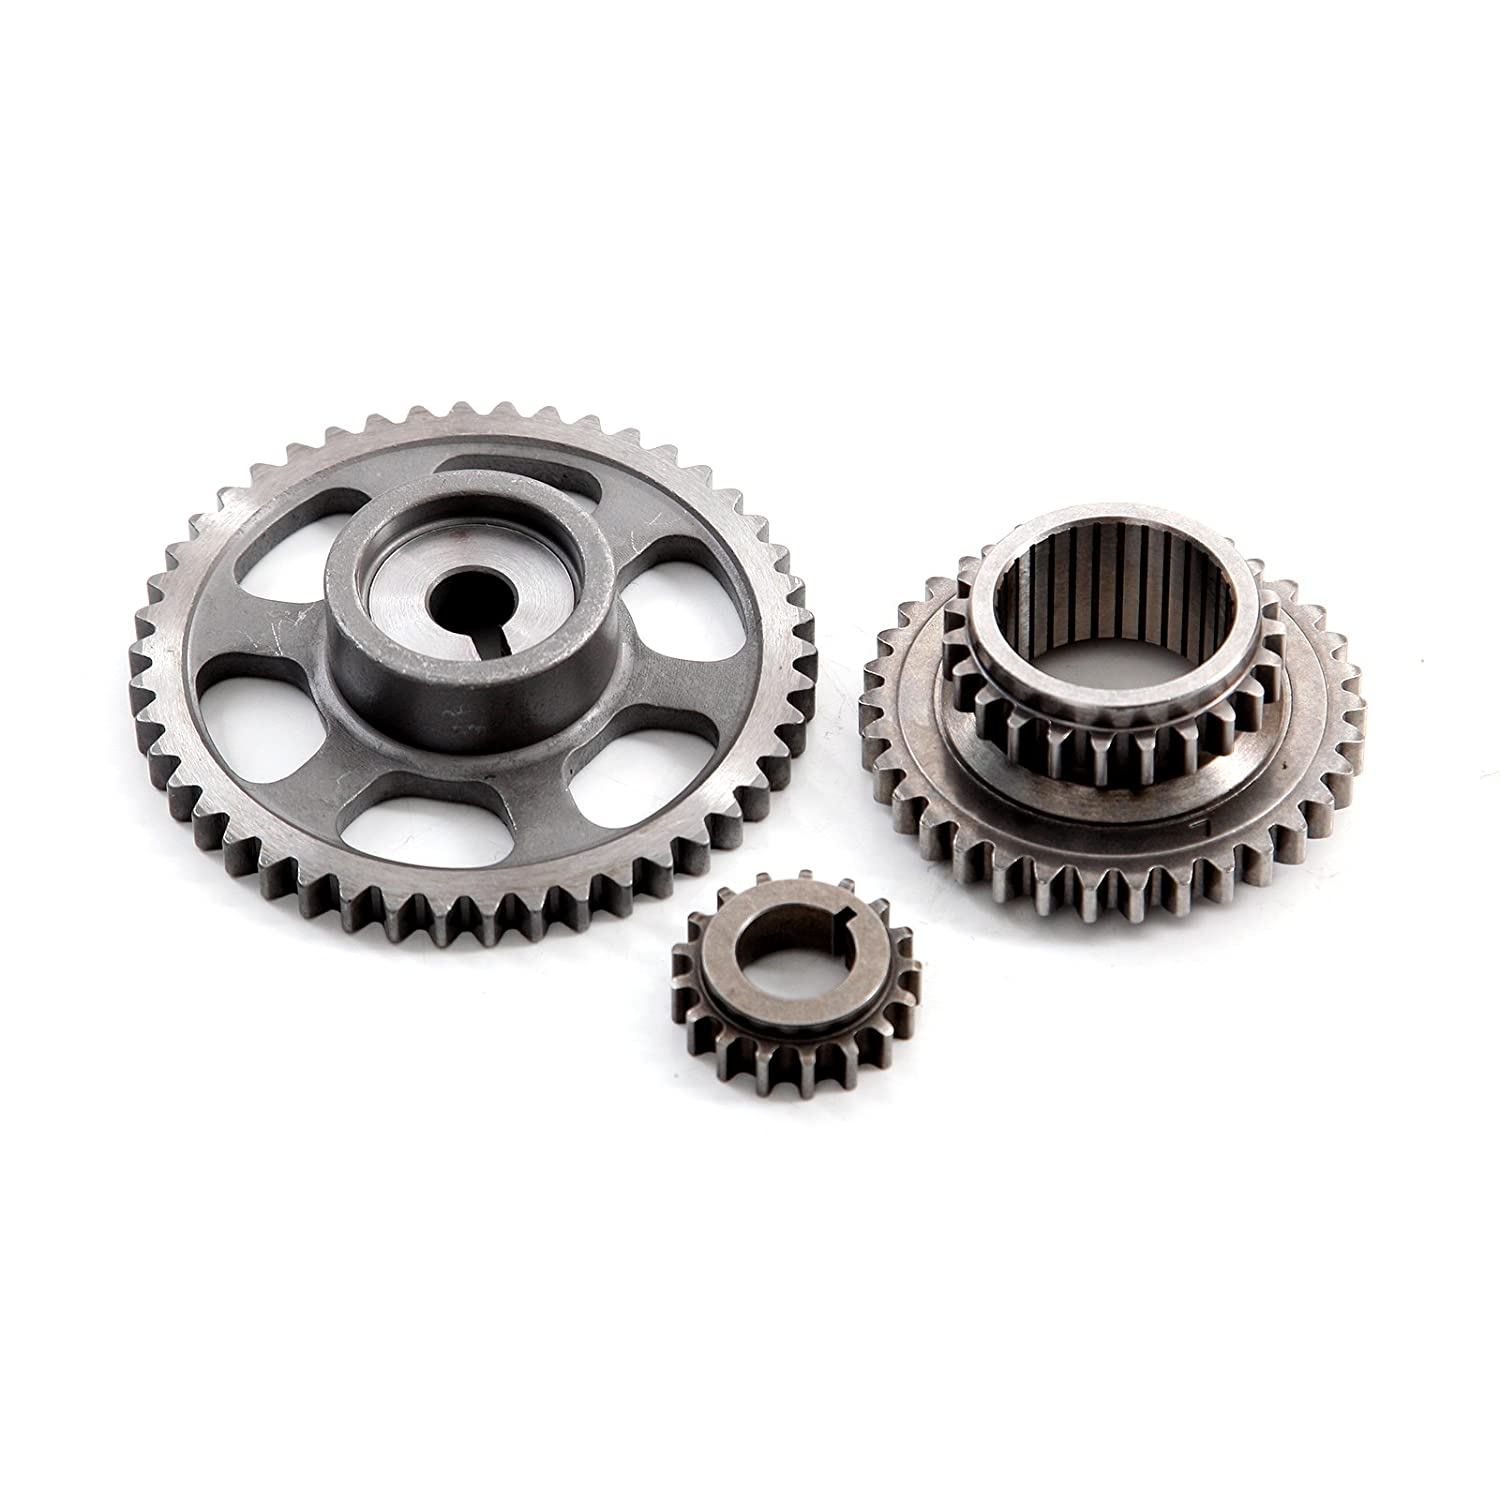 SCITOO Timing Chain Kit Fits Honda Accord Crosstour Acura TSX ILX 2.4L DOHC K24Z